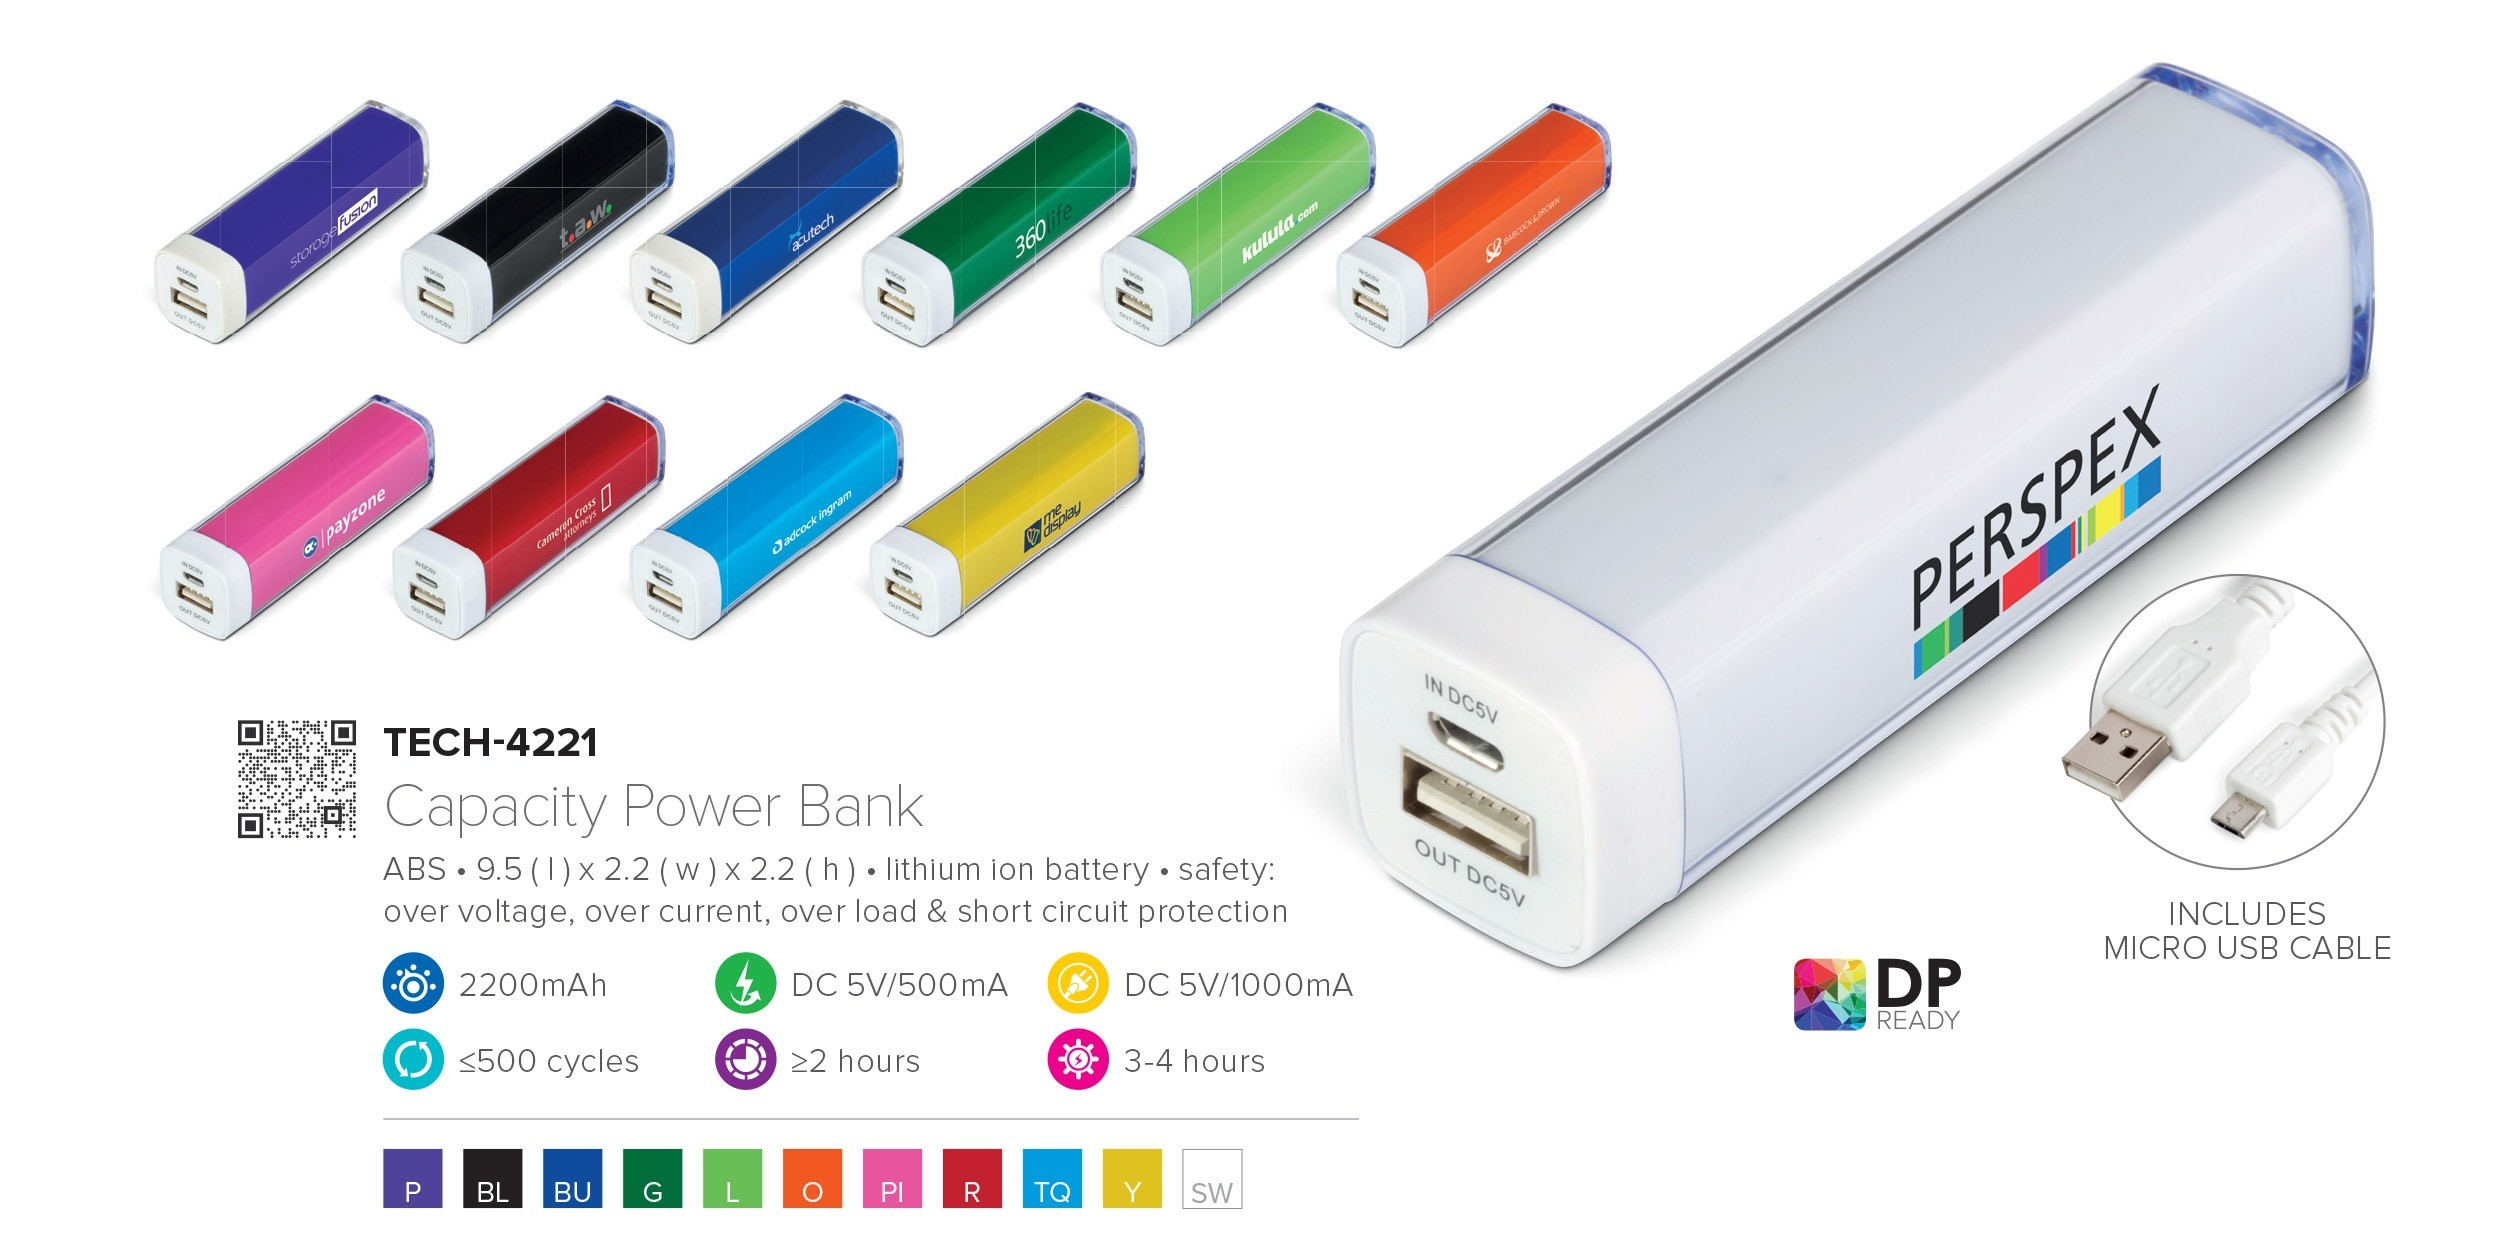 Best Selling Promotional Power Bank